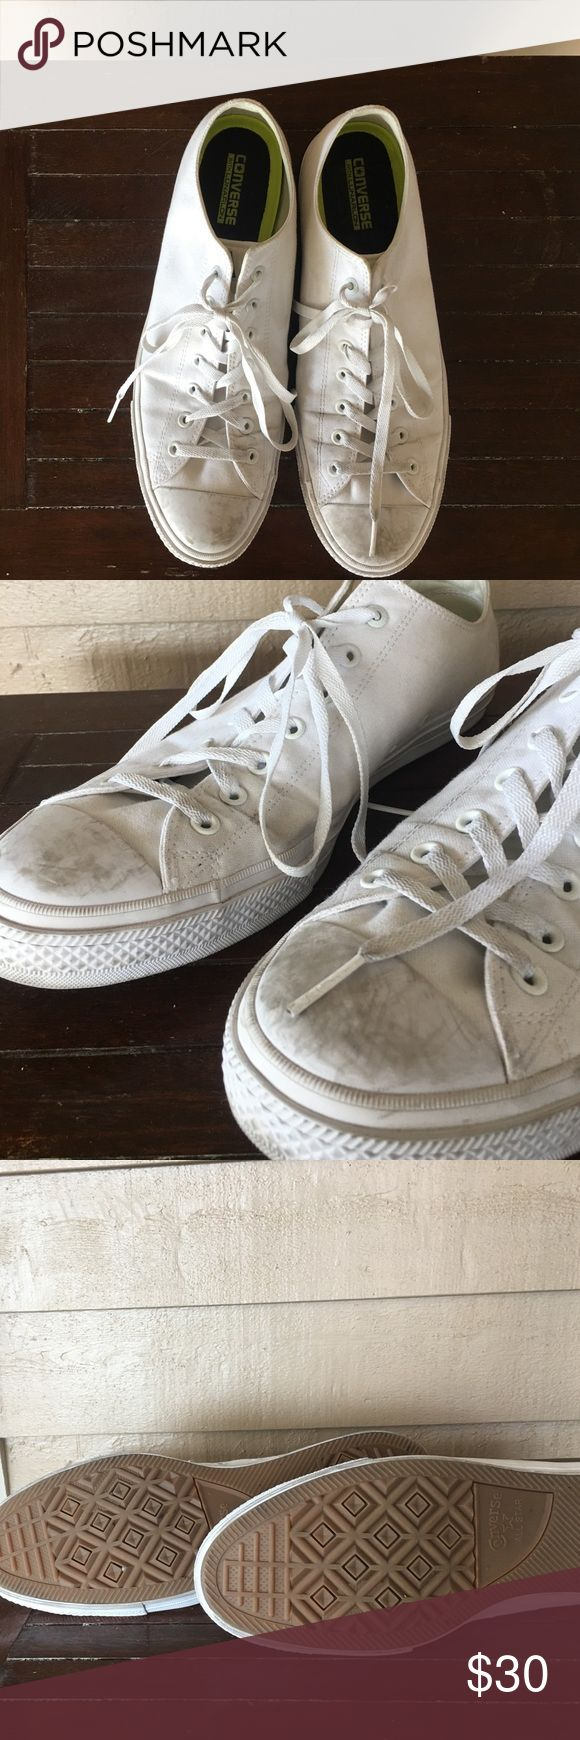 Men's White Low Top White Chuck Taylors Worn & have a decent amount of scuffing/dirt on them. The soles are in excellent shape though! They have a ton of life left in them. Always willing to accept reasonable offers! Please ask questions if you have any! Converse Shoes Sneakers